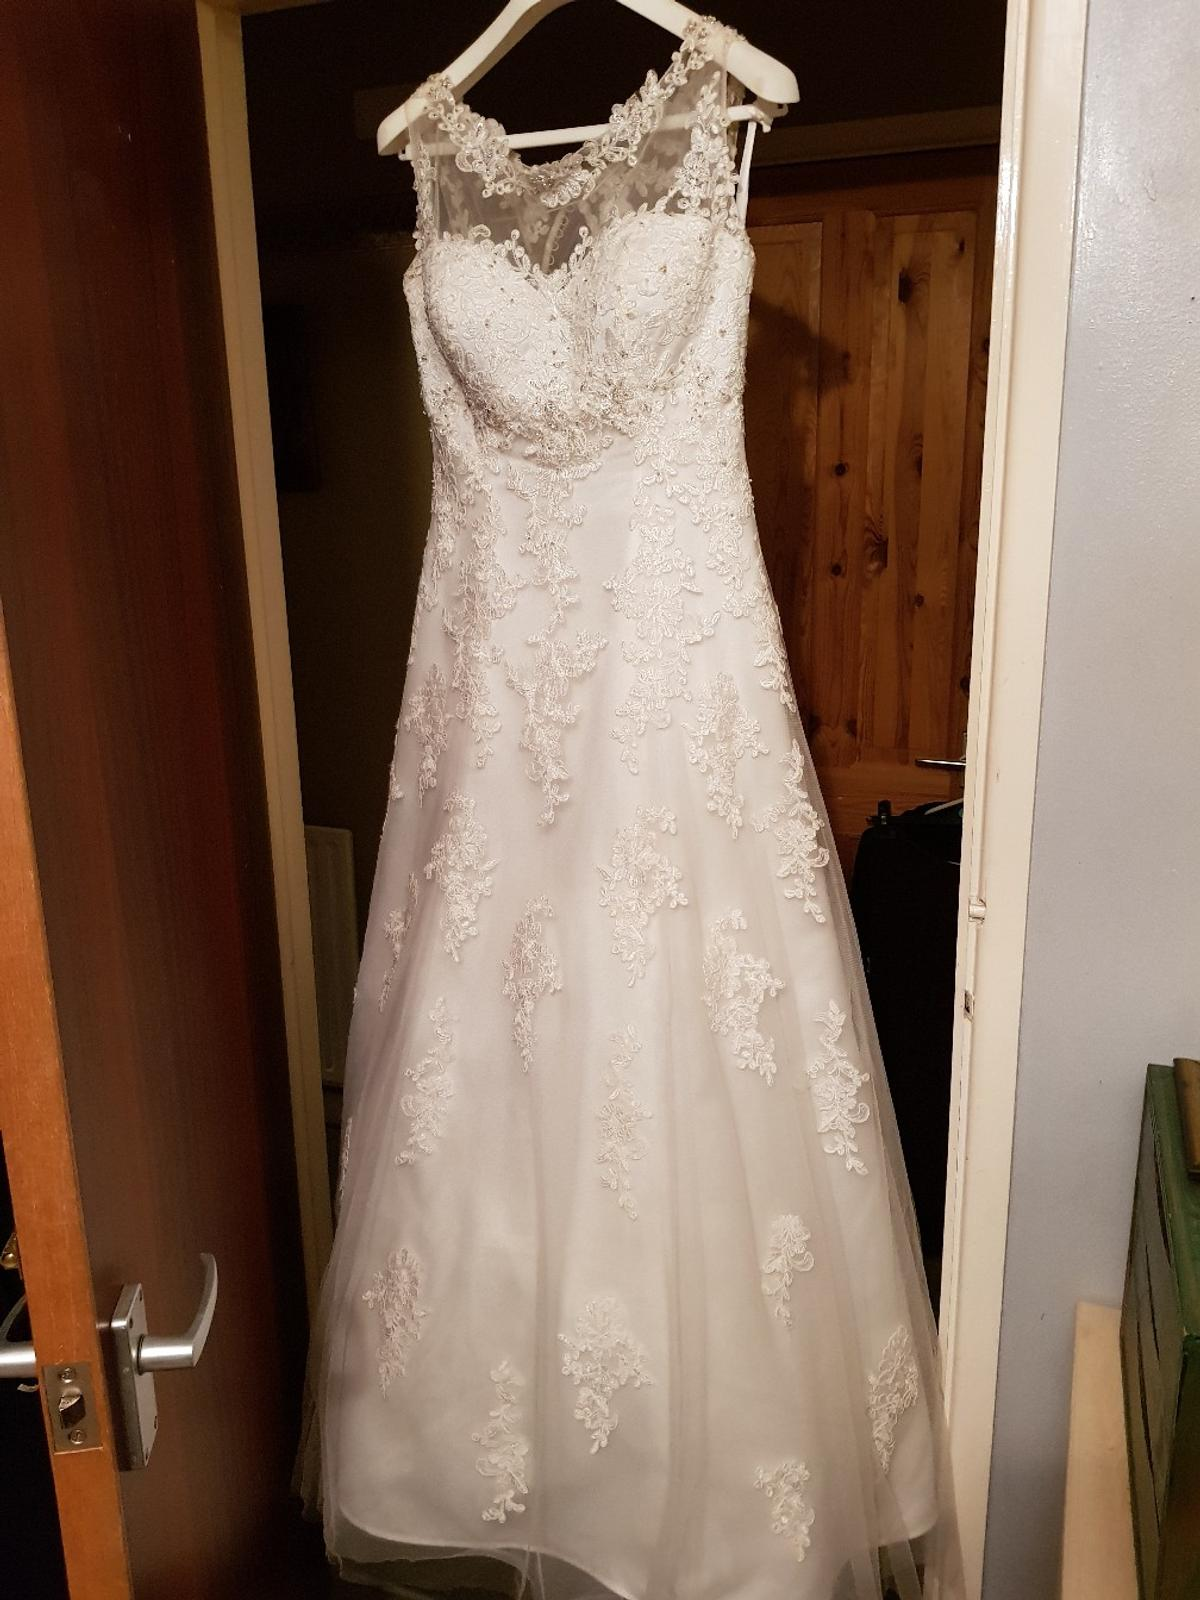 Absolutely stunning Lillian West wedding dress size 12 with illusion neck line. Will need a dry clean but only worn on the day. Ivory and silver. Bought it at £1,800. In perfect conditions, just a few slits on the mesh as in the pictures. The train picks up and hooks on the back as in picture to make the entire back exact floor length as the dress itself.